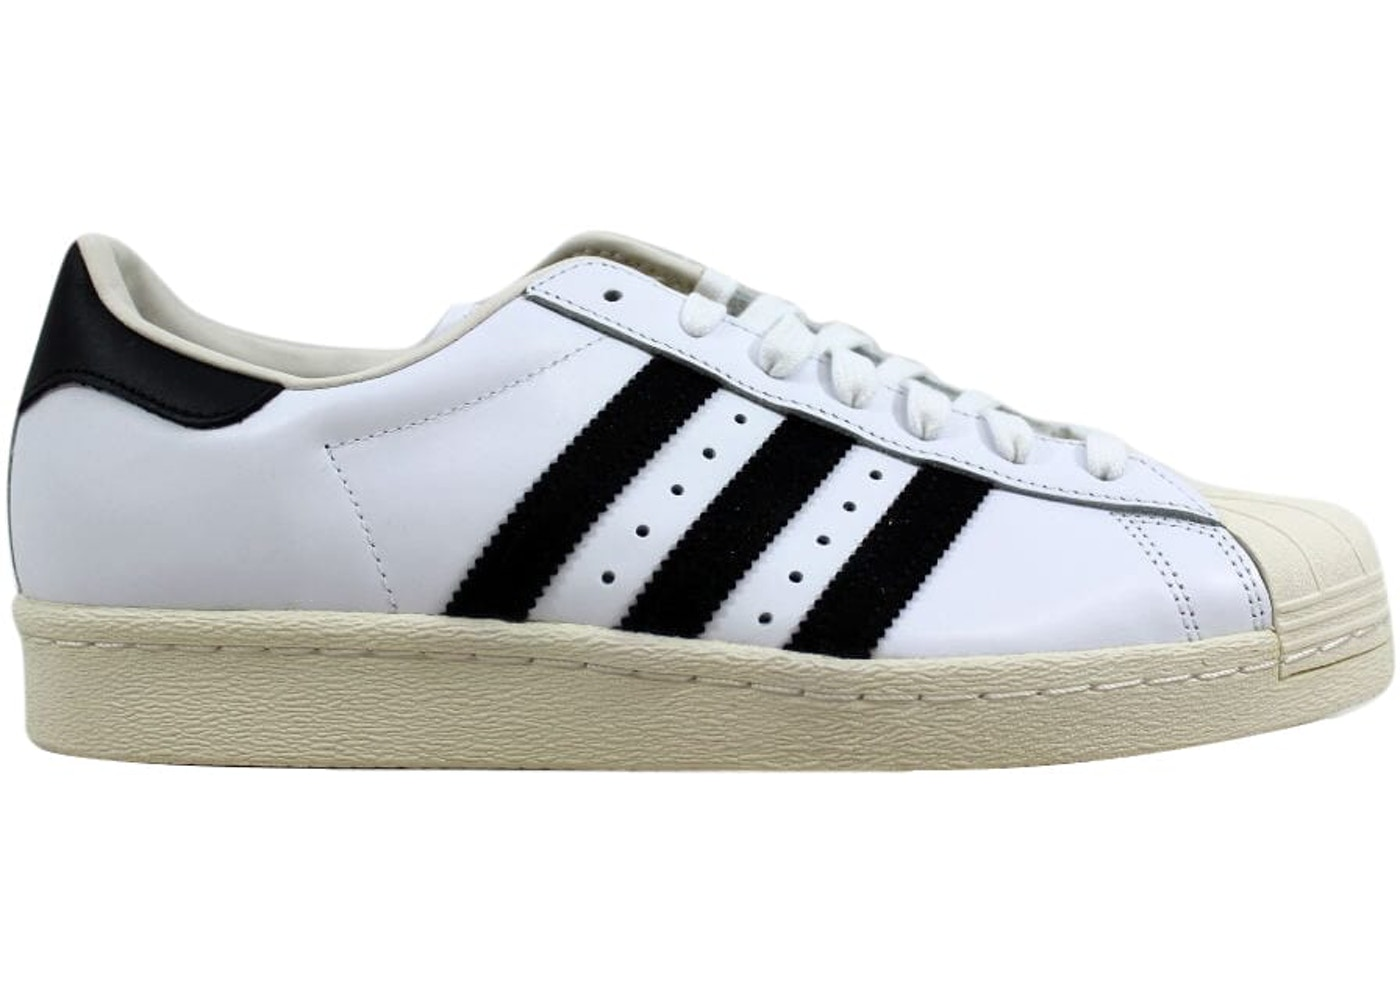 717b4617 adidas Superstar 80s White - G61070